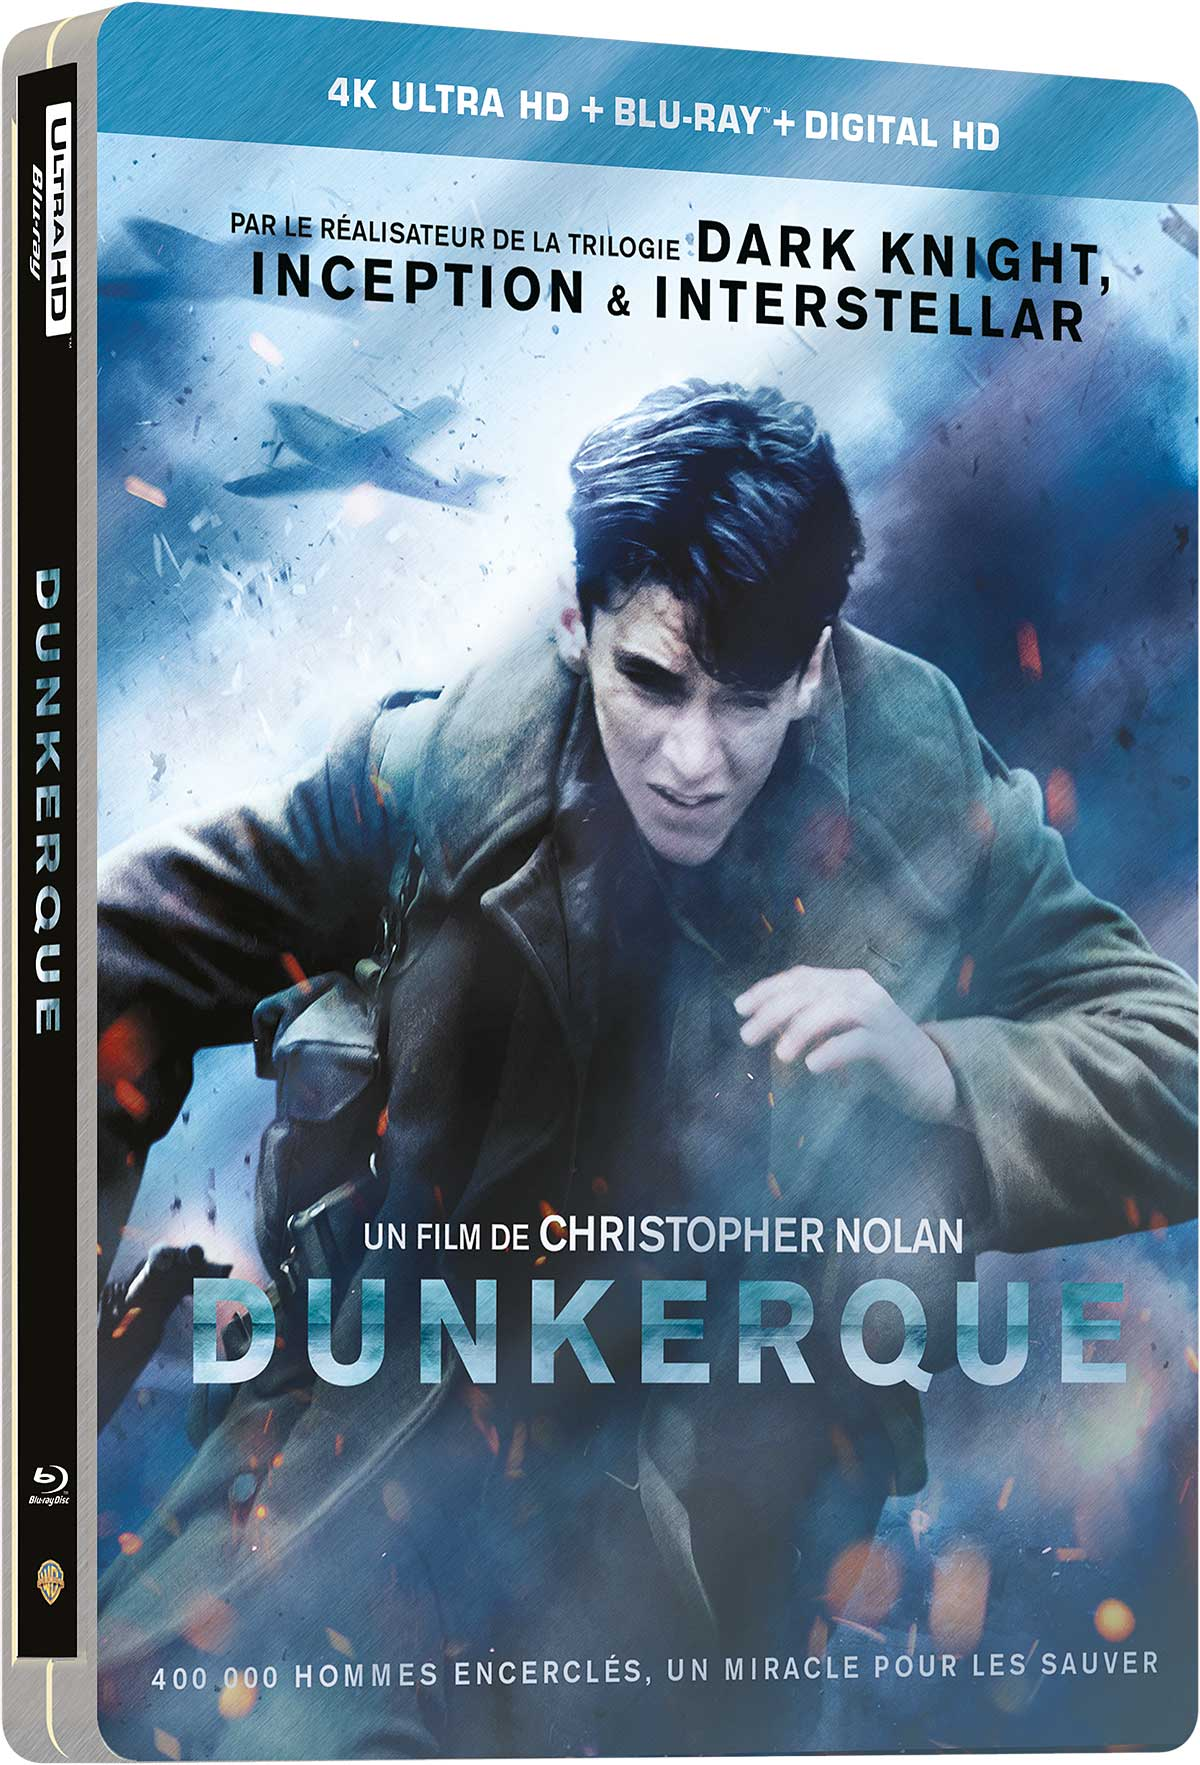 Dunkerque - 4K Ultra HD + Blu-ray - SteelBook